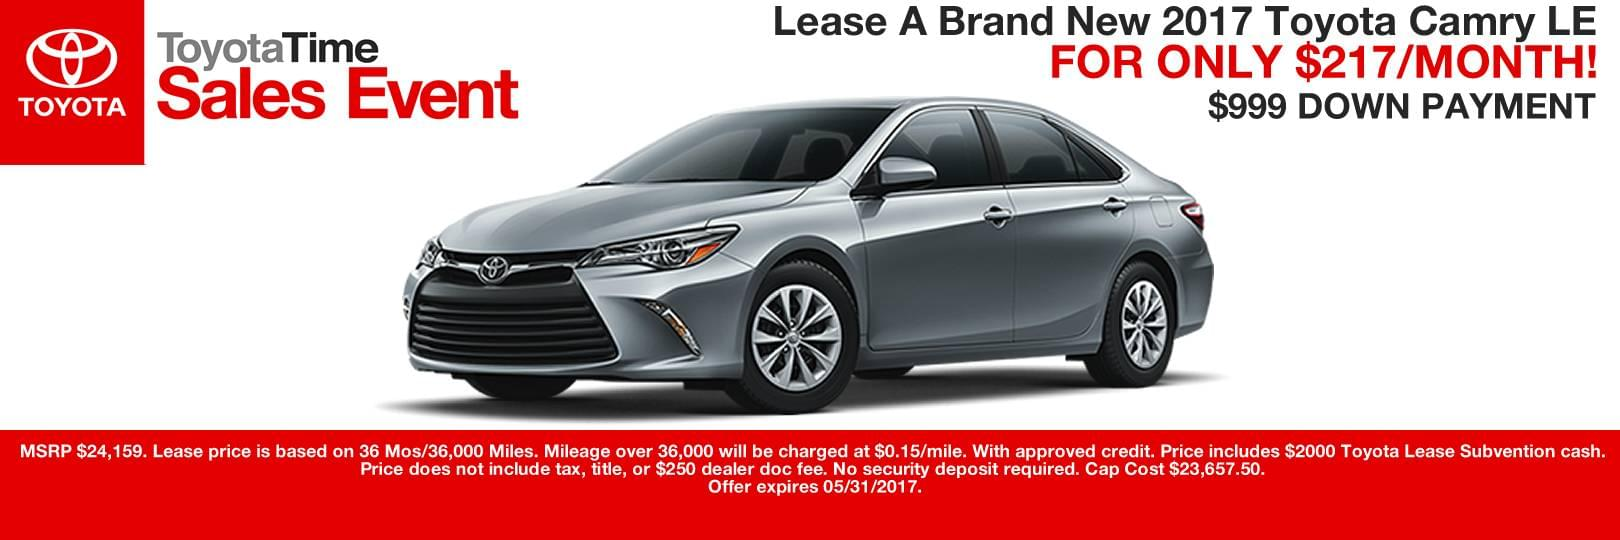 Toyota camry lease deals nj